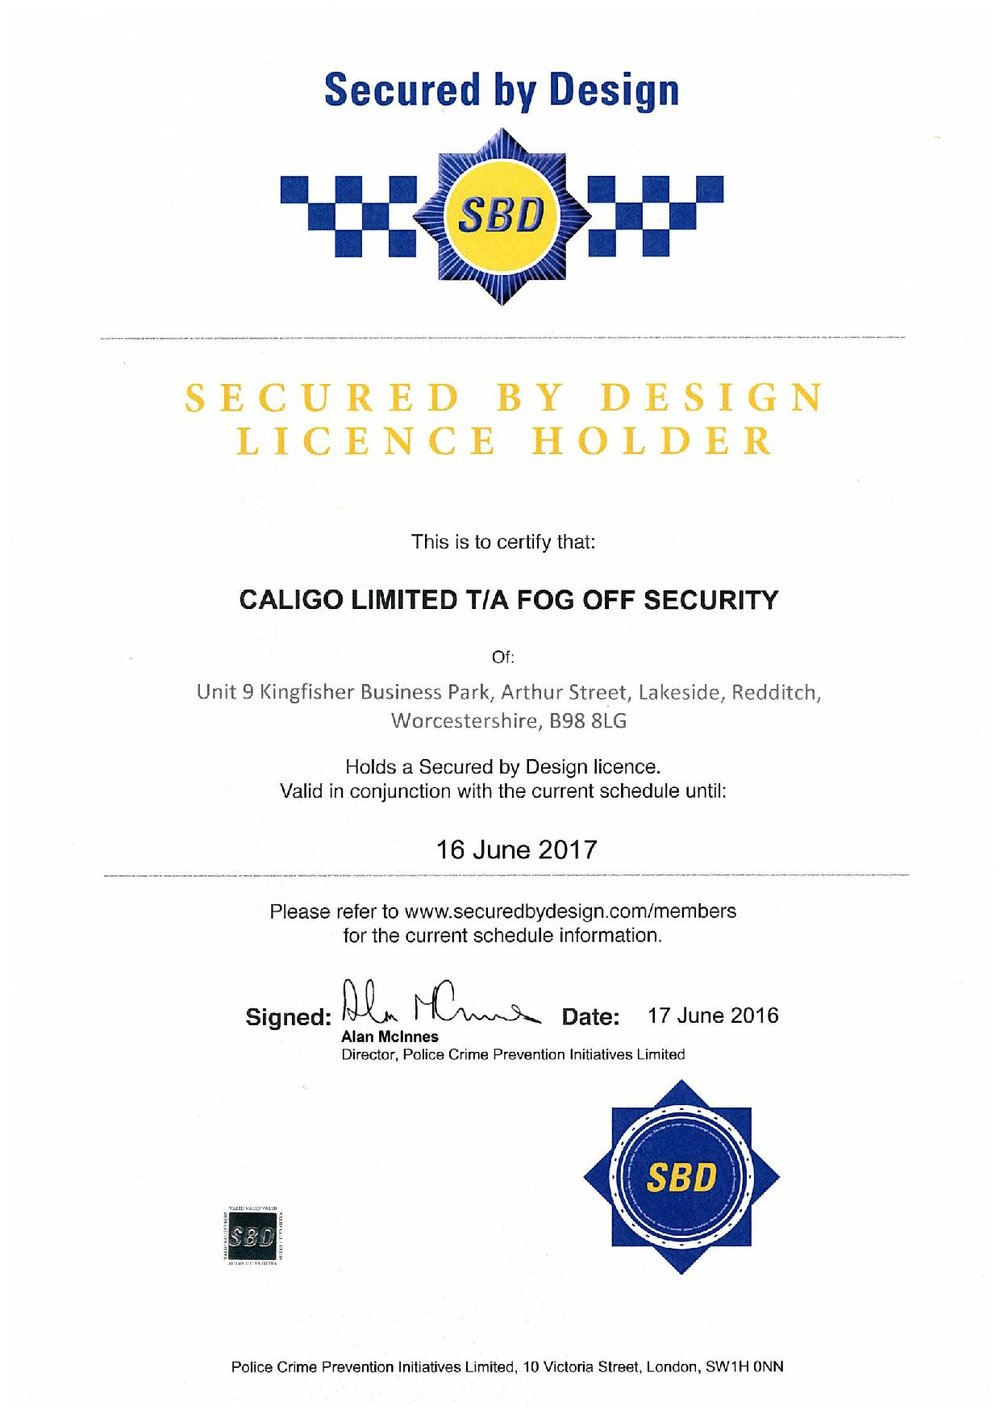 Secured by Design Certificate - Caligo Ltd Fog Off Security-page-001.jpg